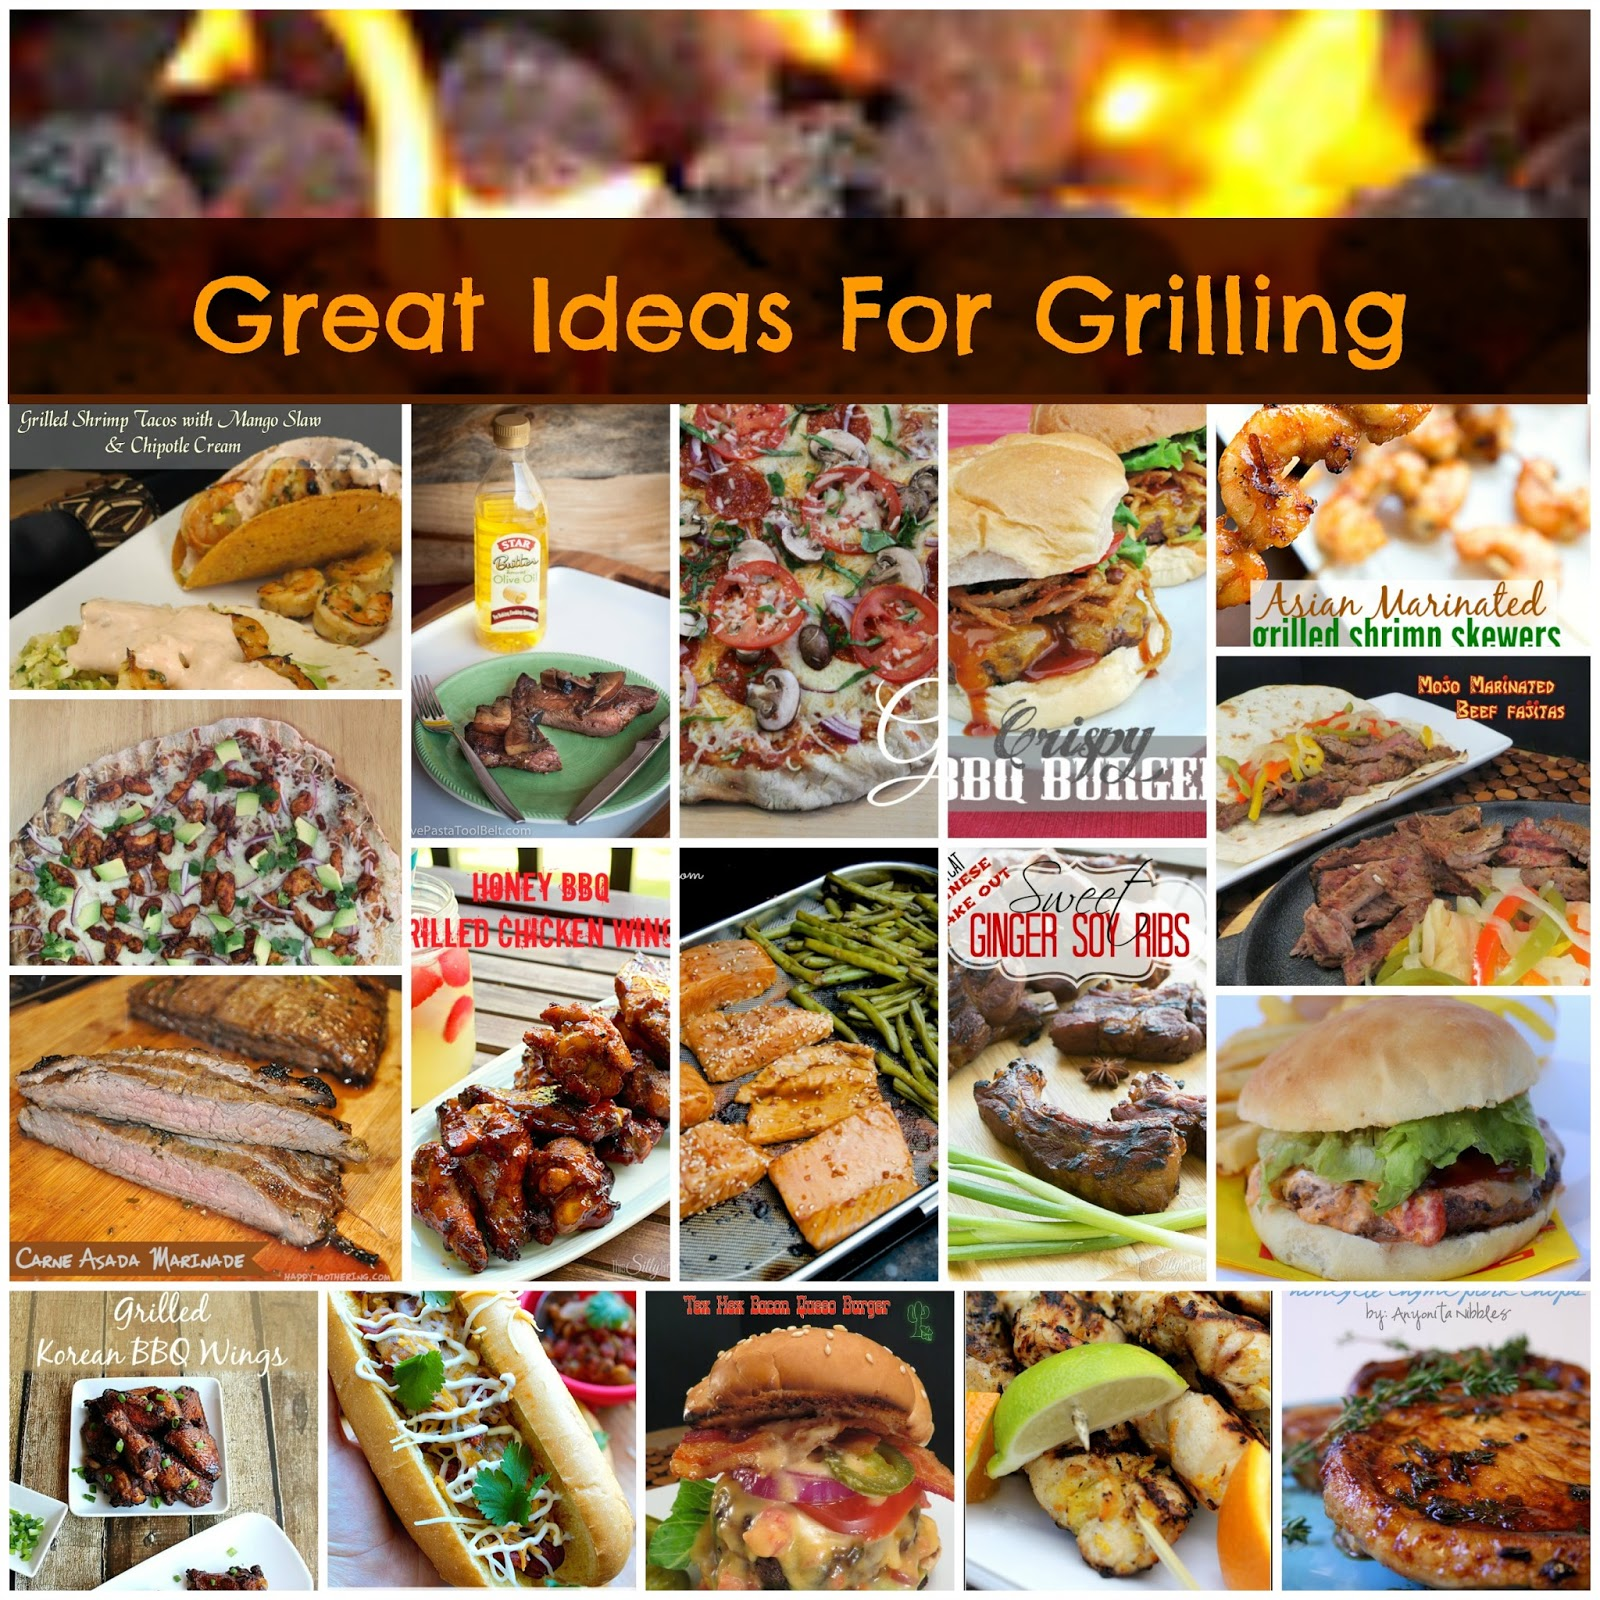 17 Great Ideas for Grilling:  A roundup of 17 recipes to cook on the grill for Memorial Day or anytime you feel like grilling.  From the archives of Great Idea Thursdays.